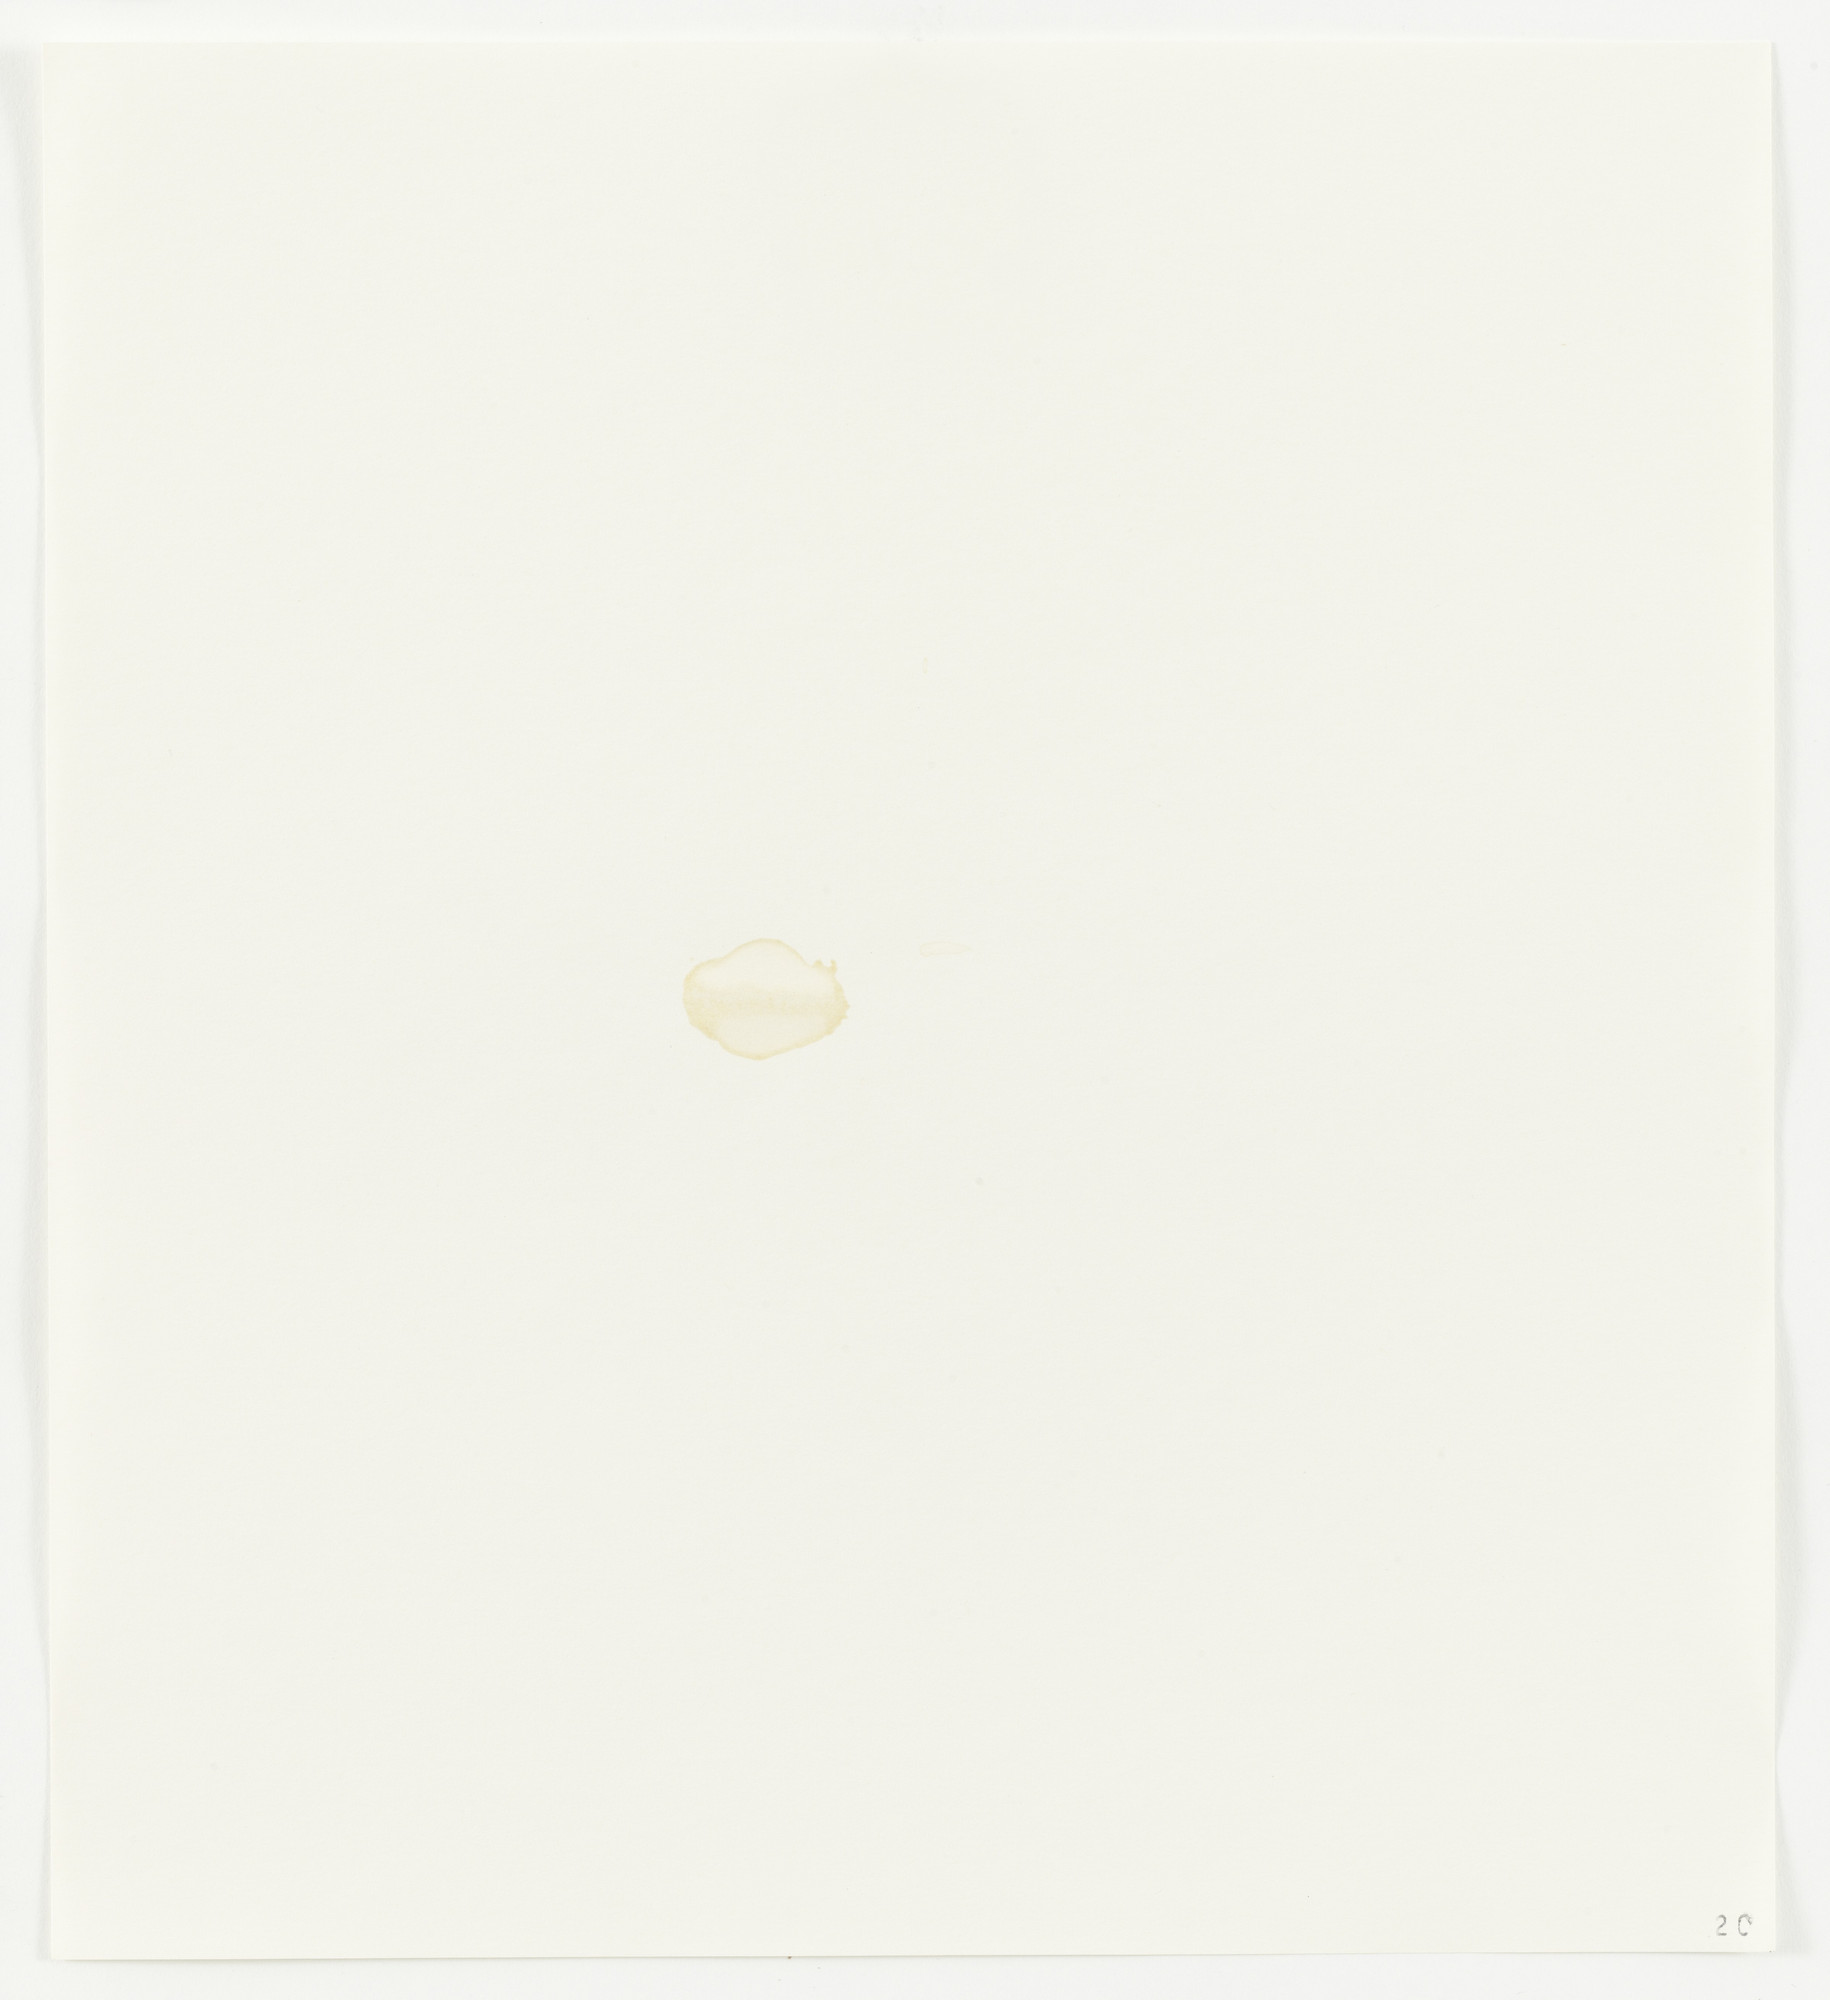 Edward Ruscha. Beer (Coors) from Stains. 1969